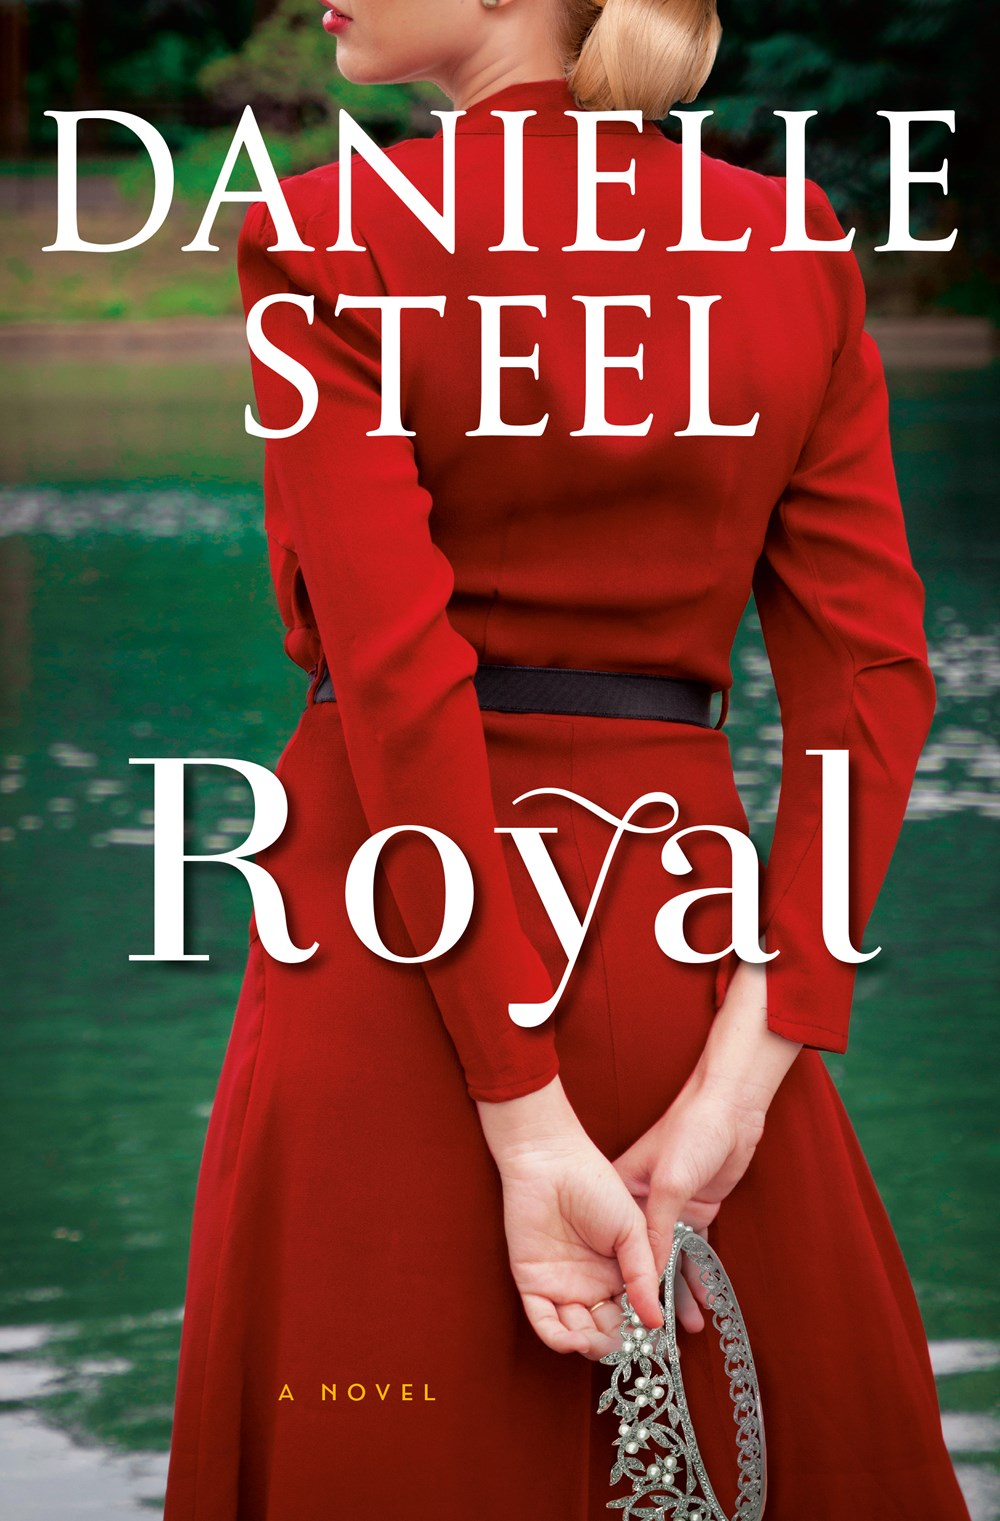 'Royal' by Danielle Steel Leads Library Holds | Book Pulse